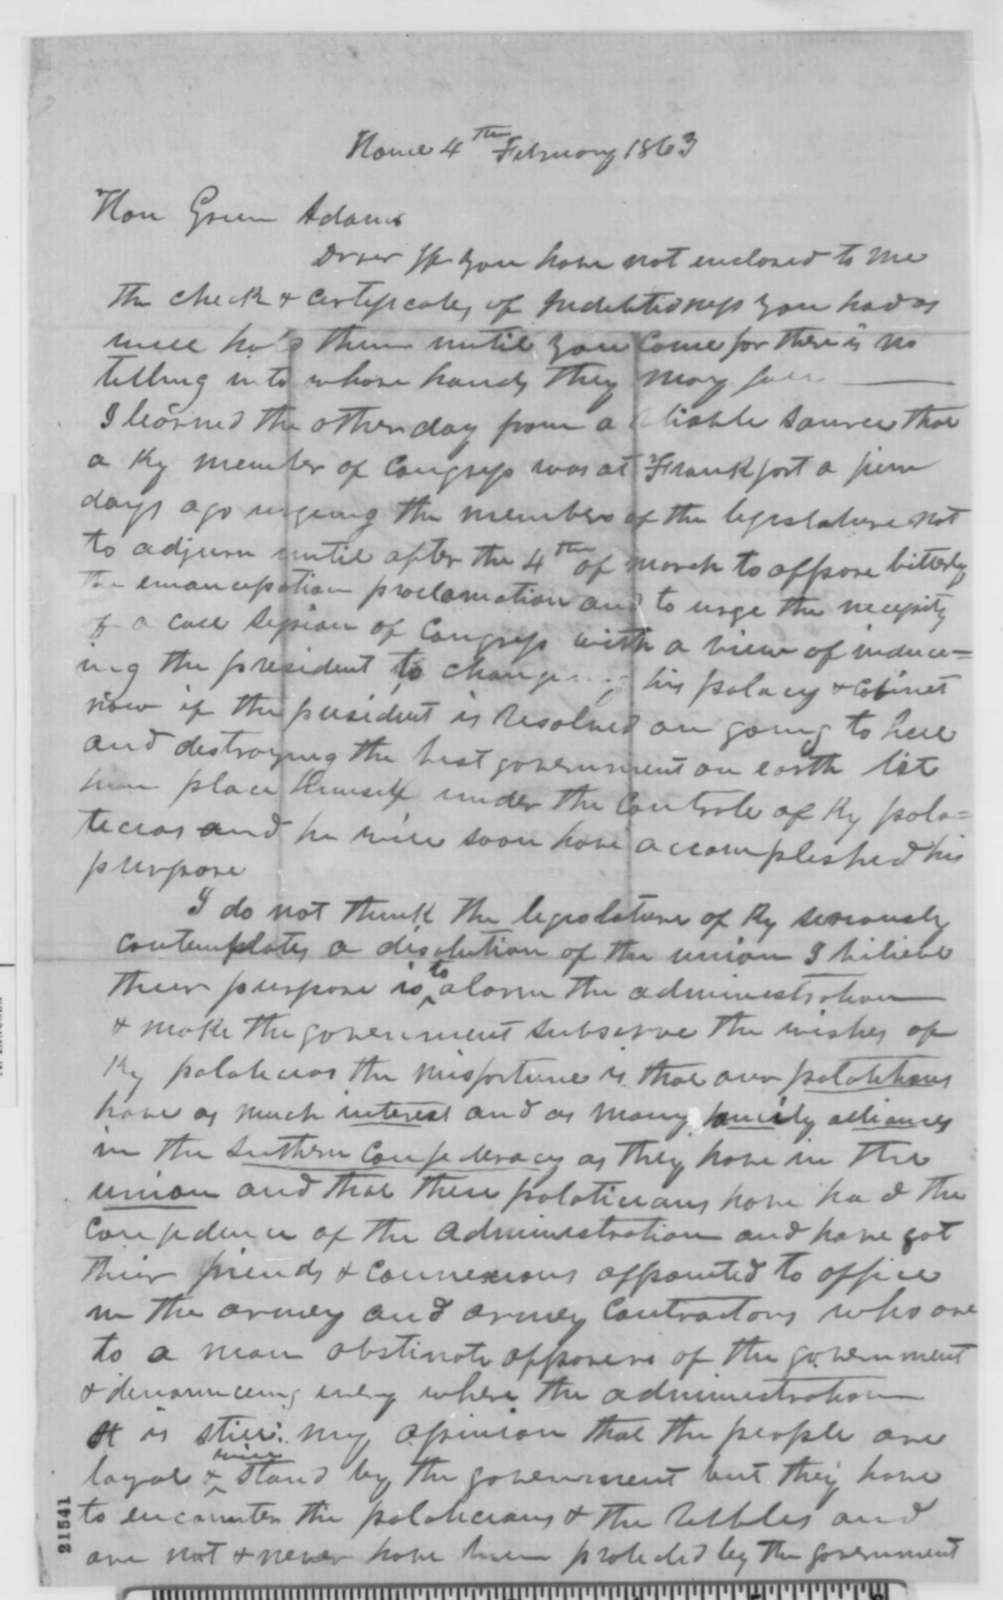 Samuel Lusk to Green Adams, Wednesday, February 04, 1863  (Response to Emancipation Proclamation in Kentucky)